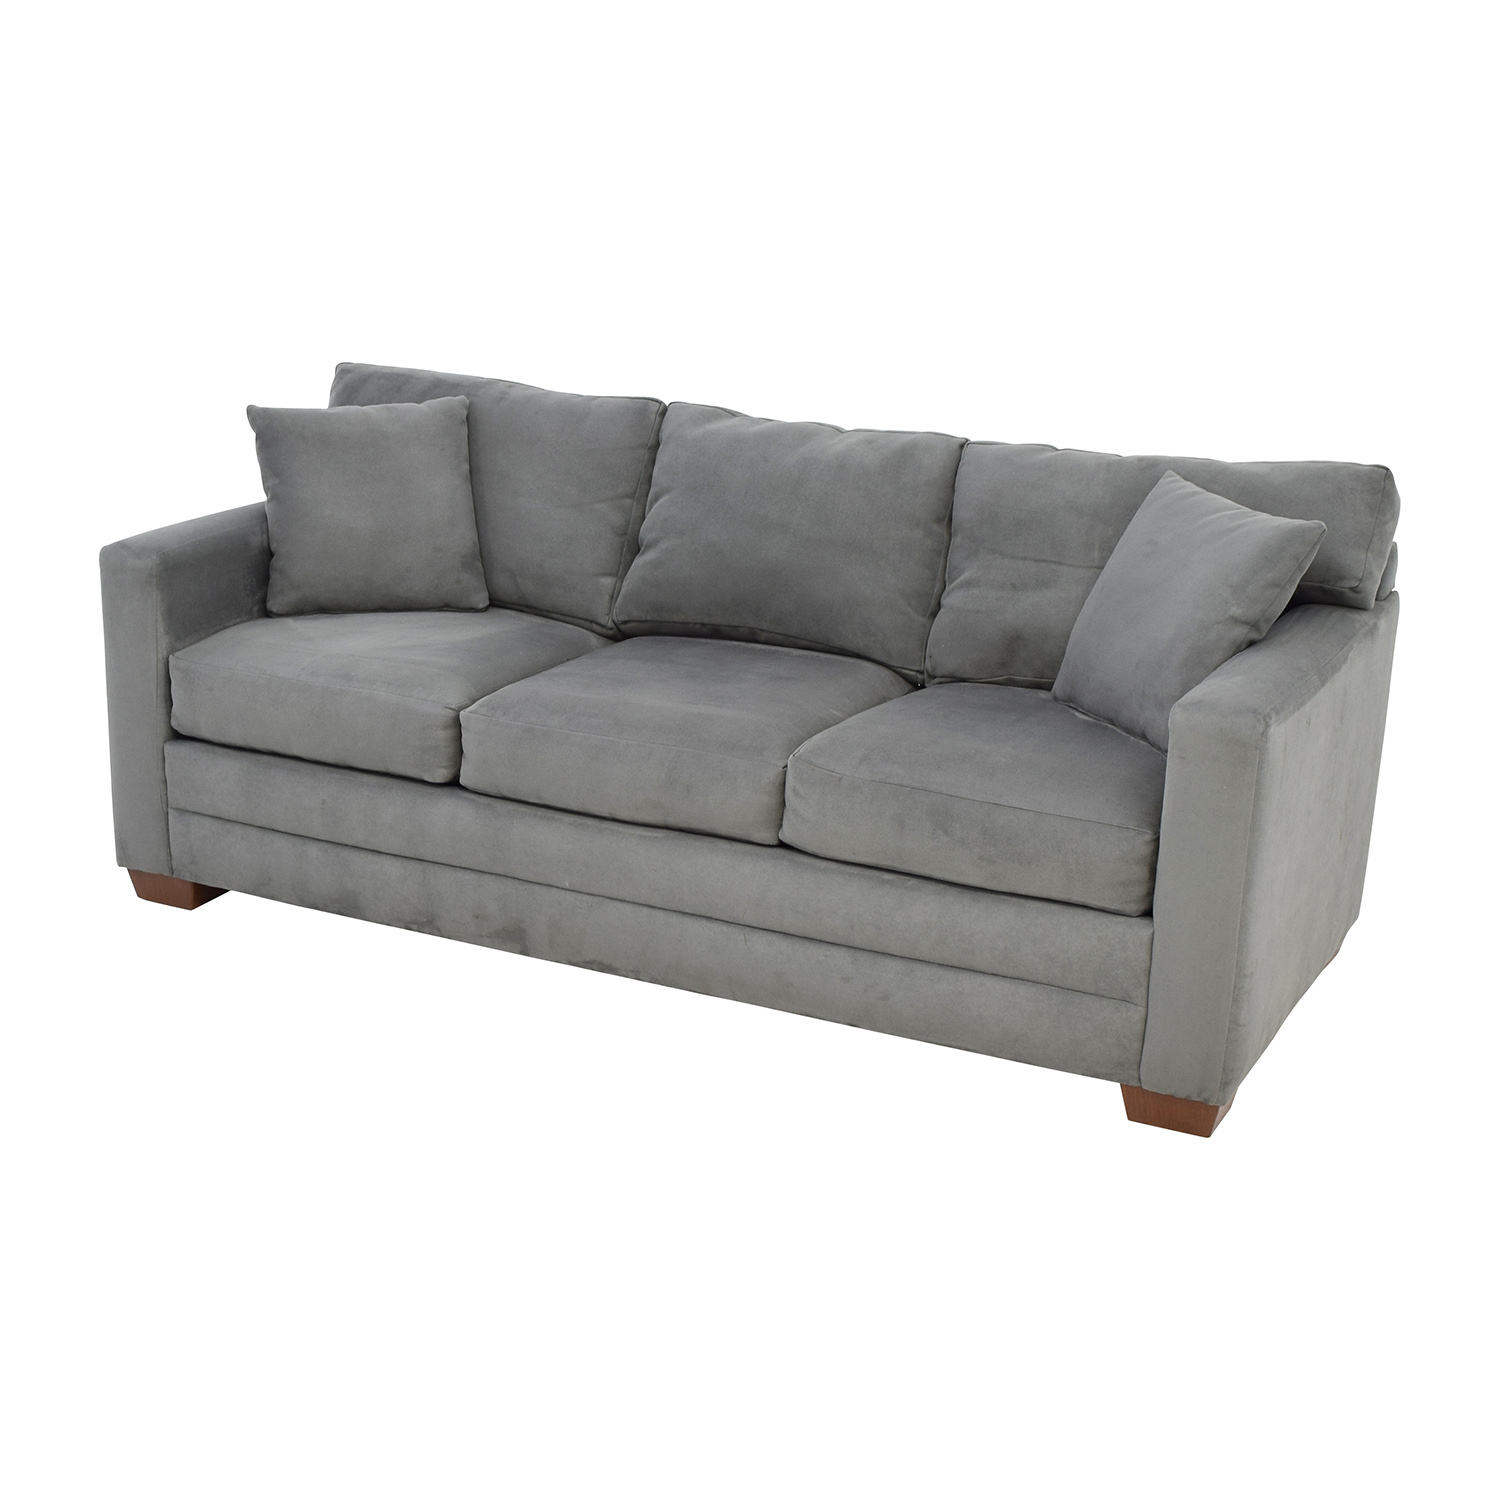 72 off jensen lewis jensen lewis dark grey microsuede for Grey microsuede sectional sofa